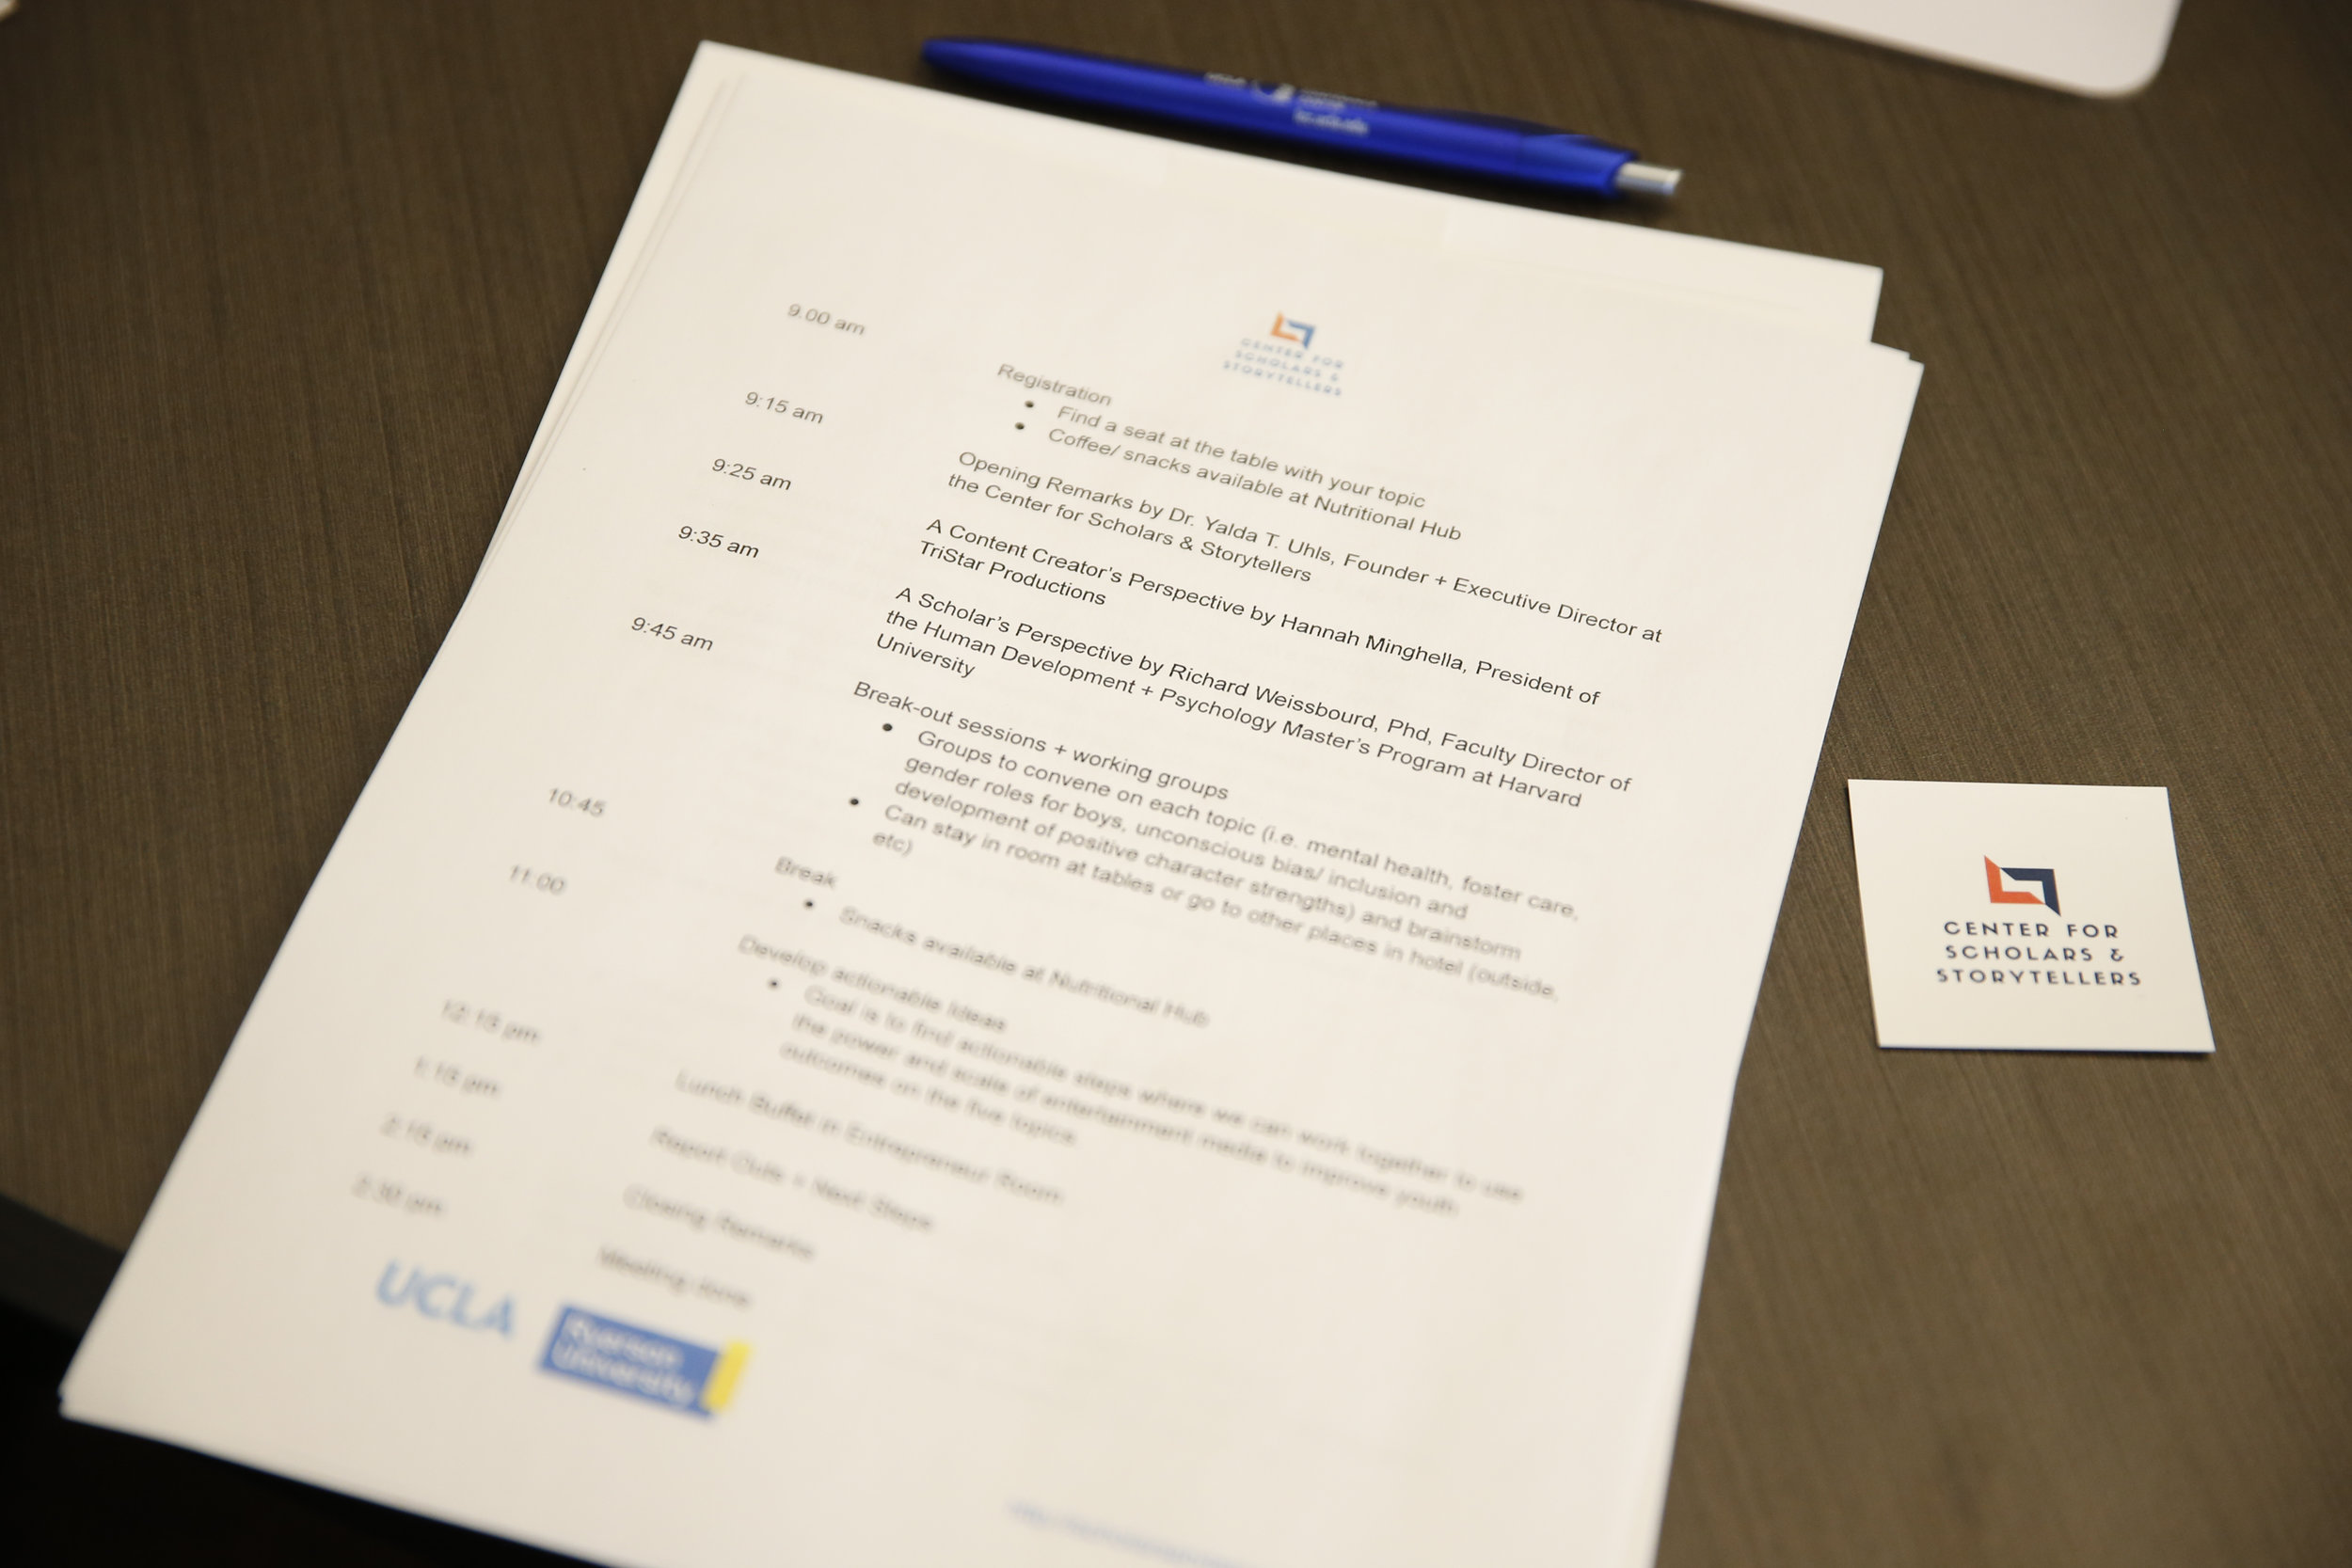 The agenda for our first think tank, held at UCLA's Luskin conference Center.